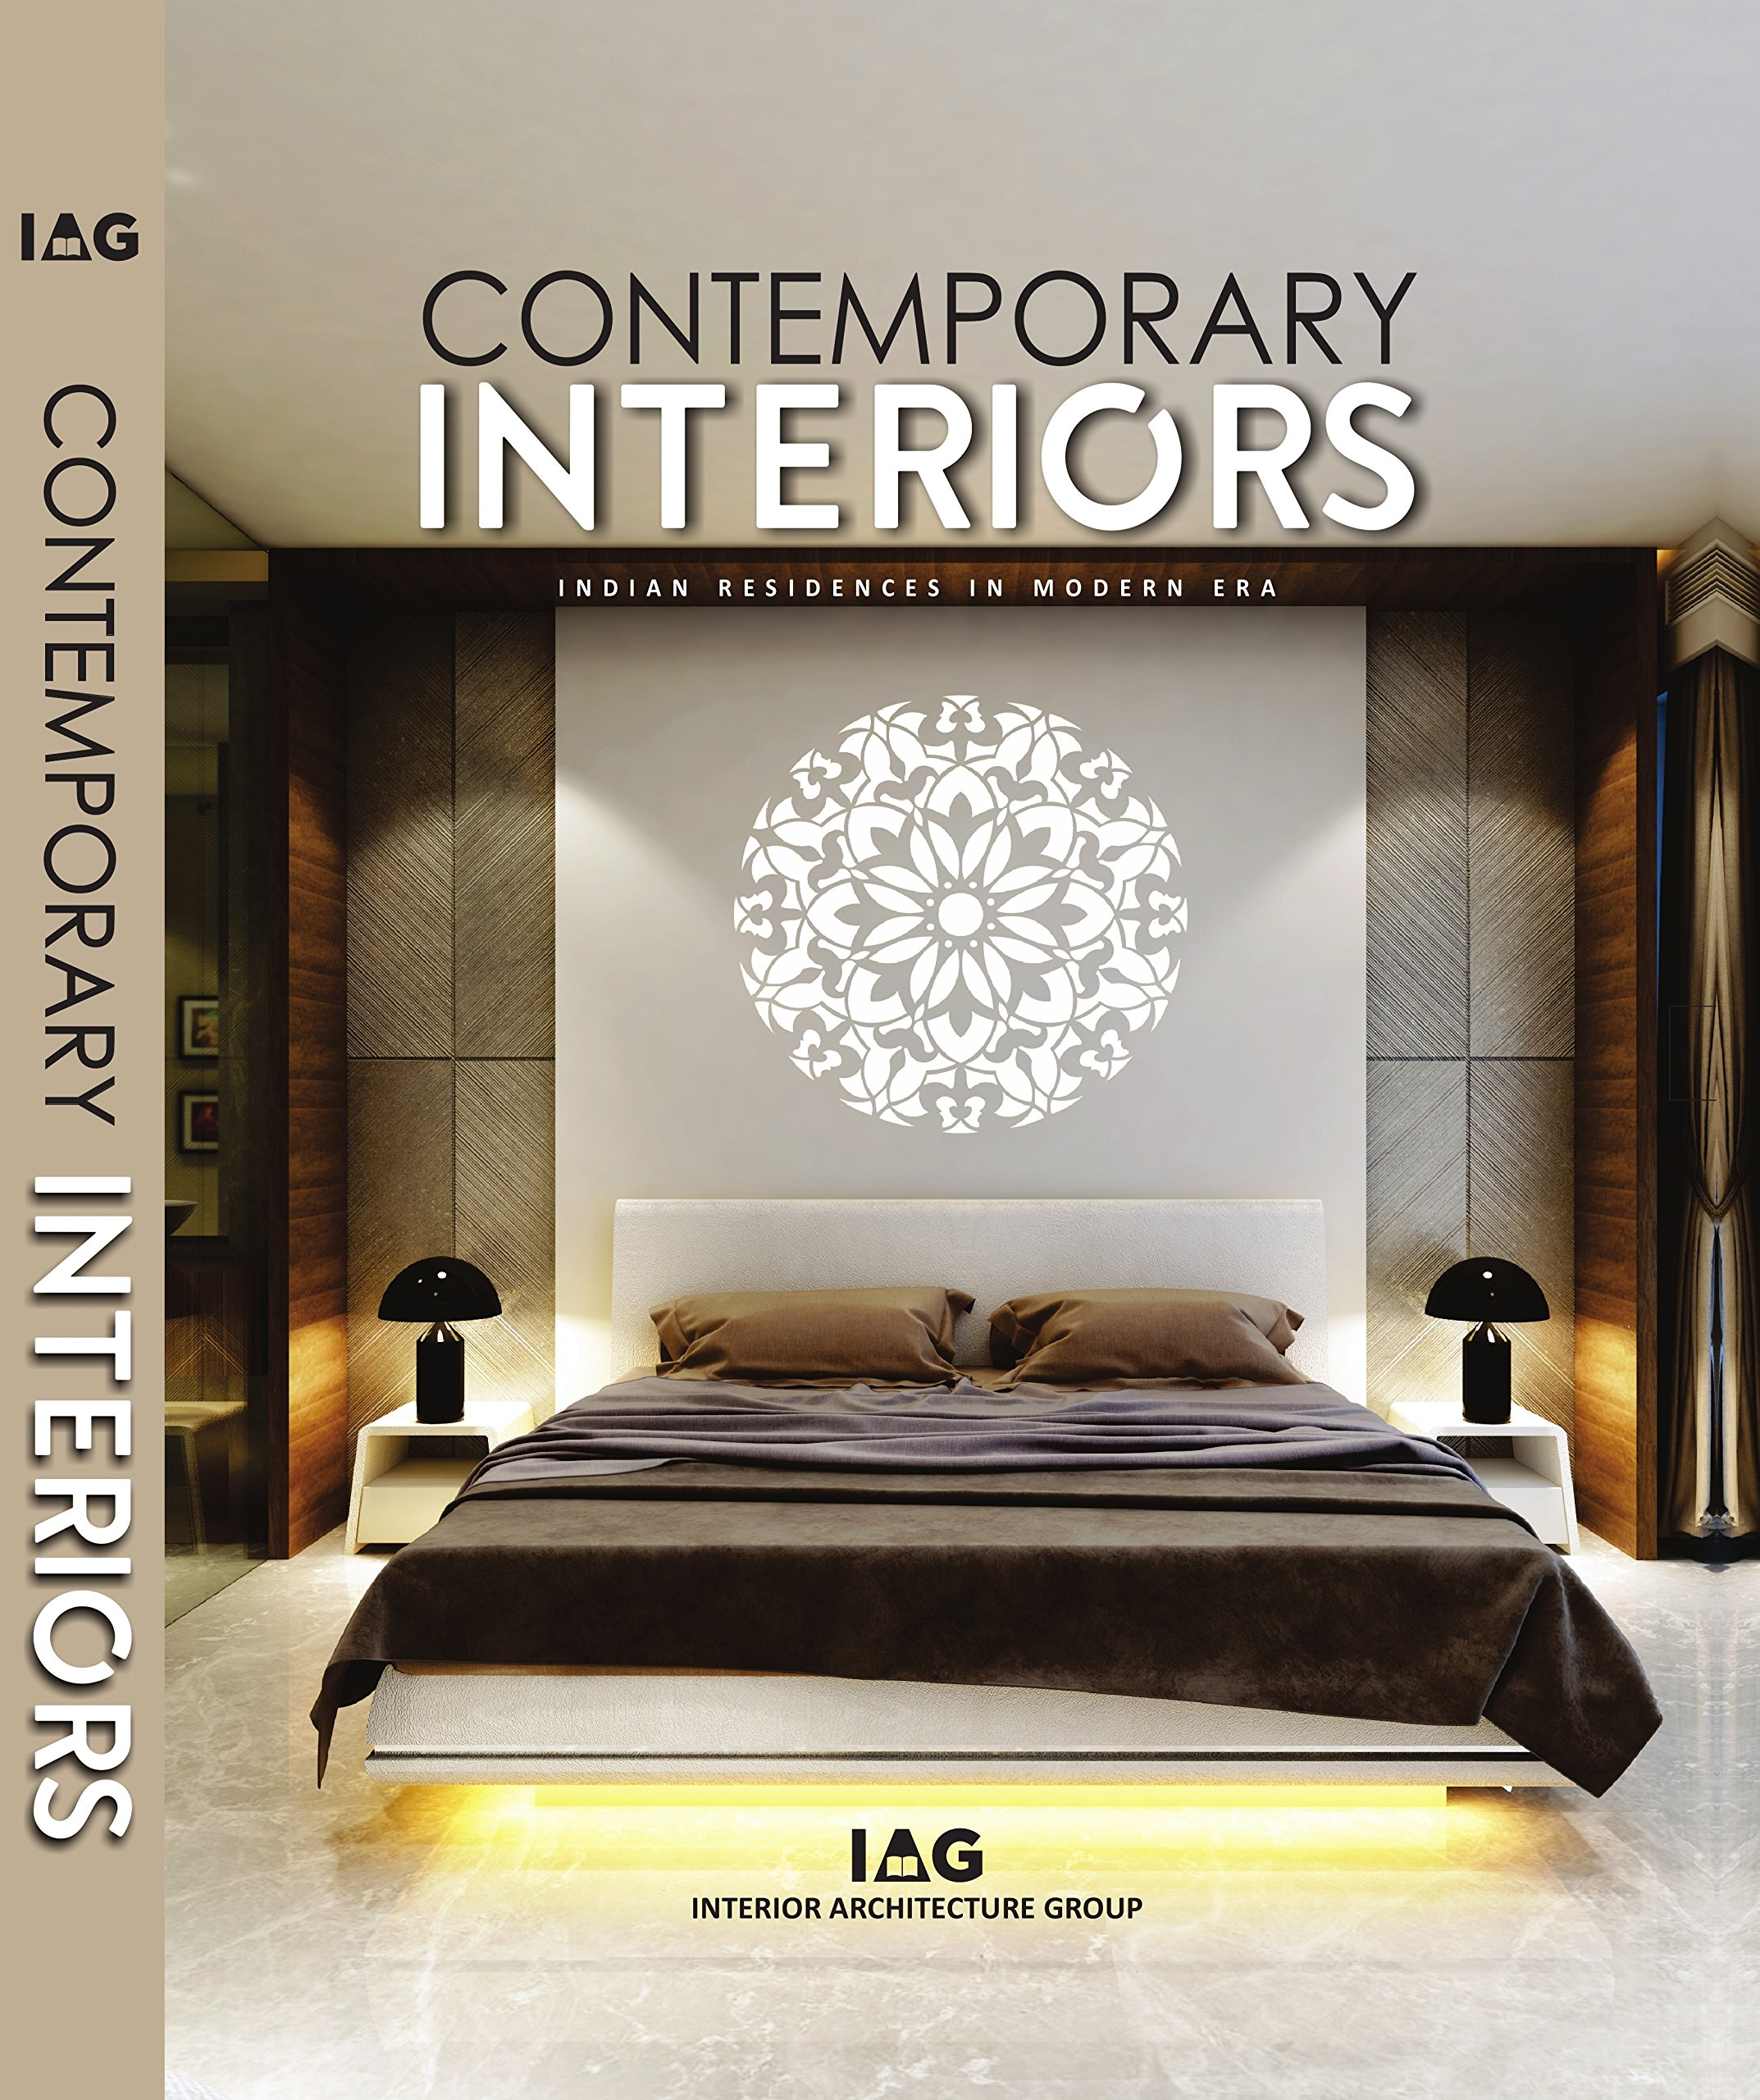 CONTEMPORARY INTERIORS Hardcover U2013 2017